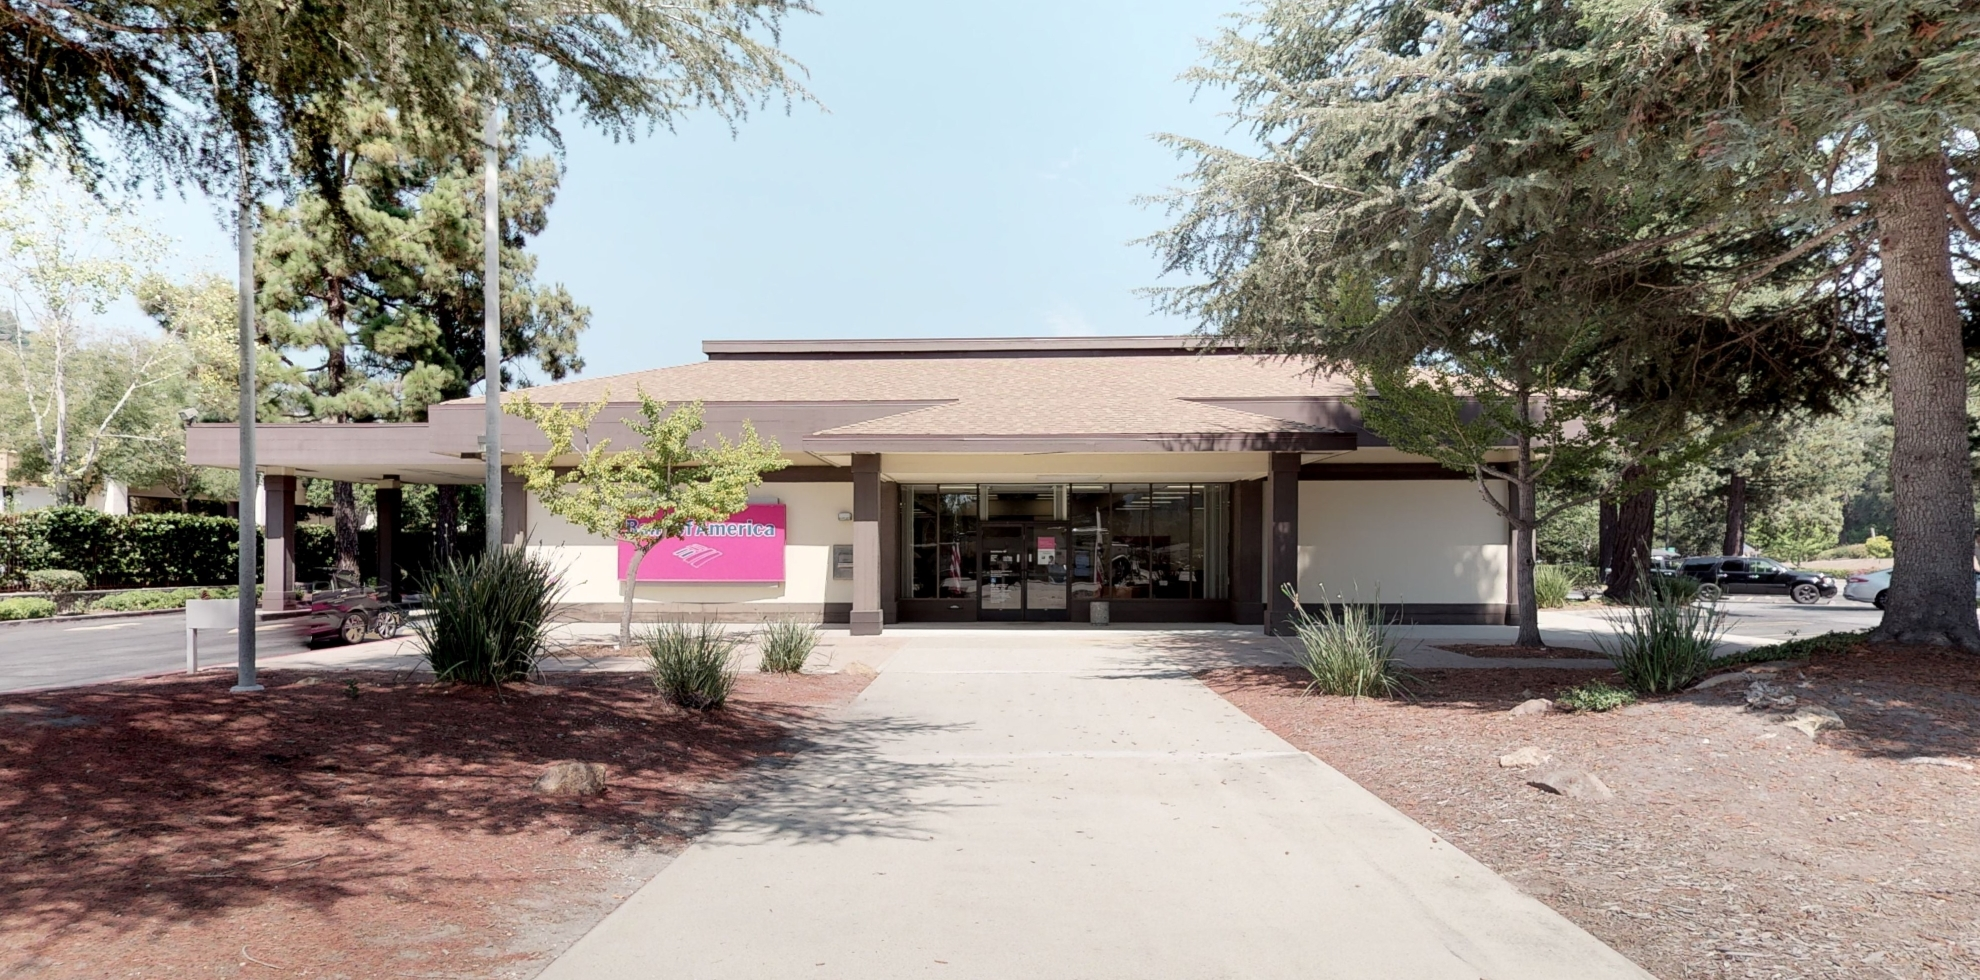 Bank of America financial center with drive-thru ATM | 4525 Scotts Valley Dr, Scotts Valley, CA 95066